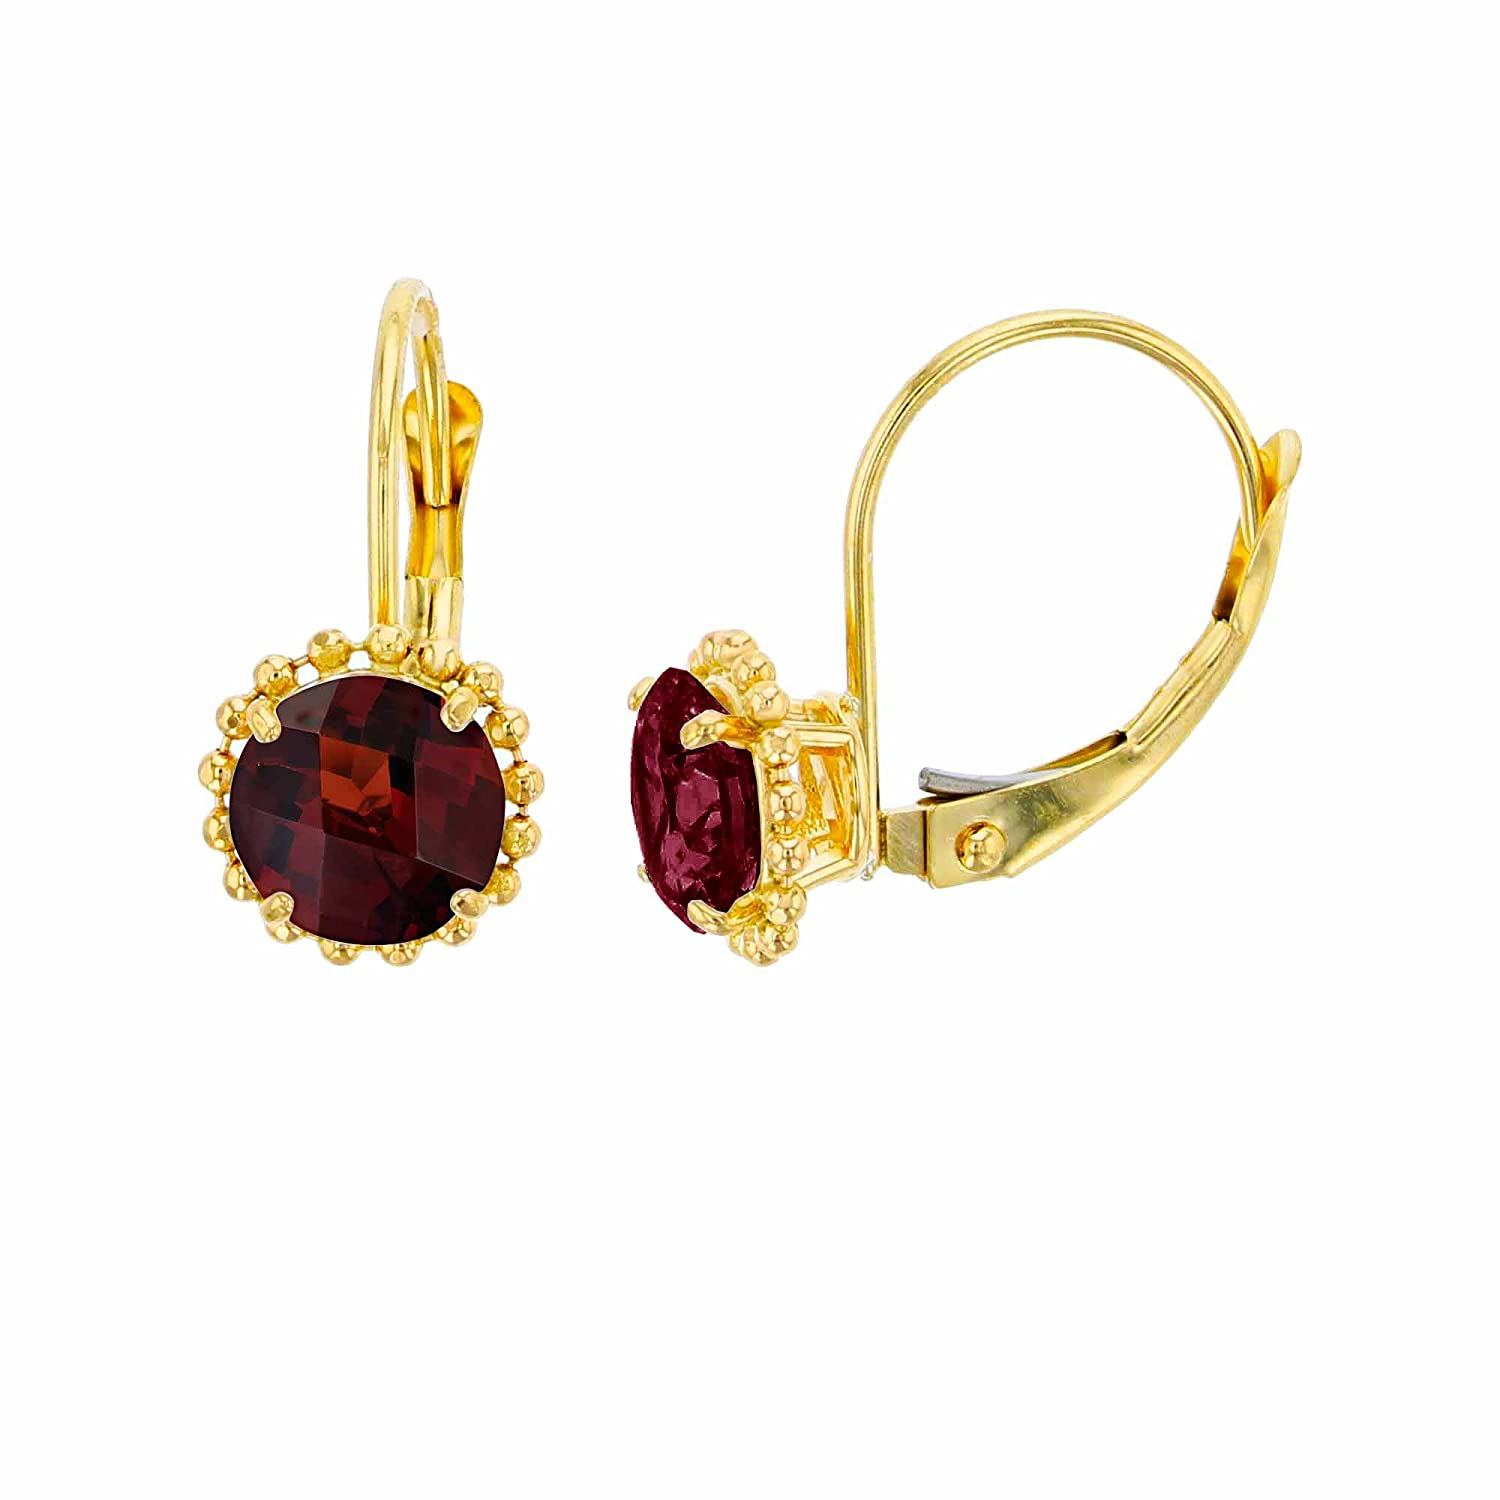 10K Yellow Gold 6mm Round Gemstone Center Stone Bead Frame Leverback Earring